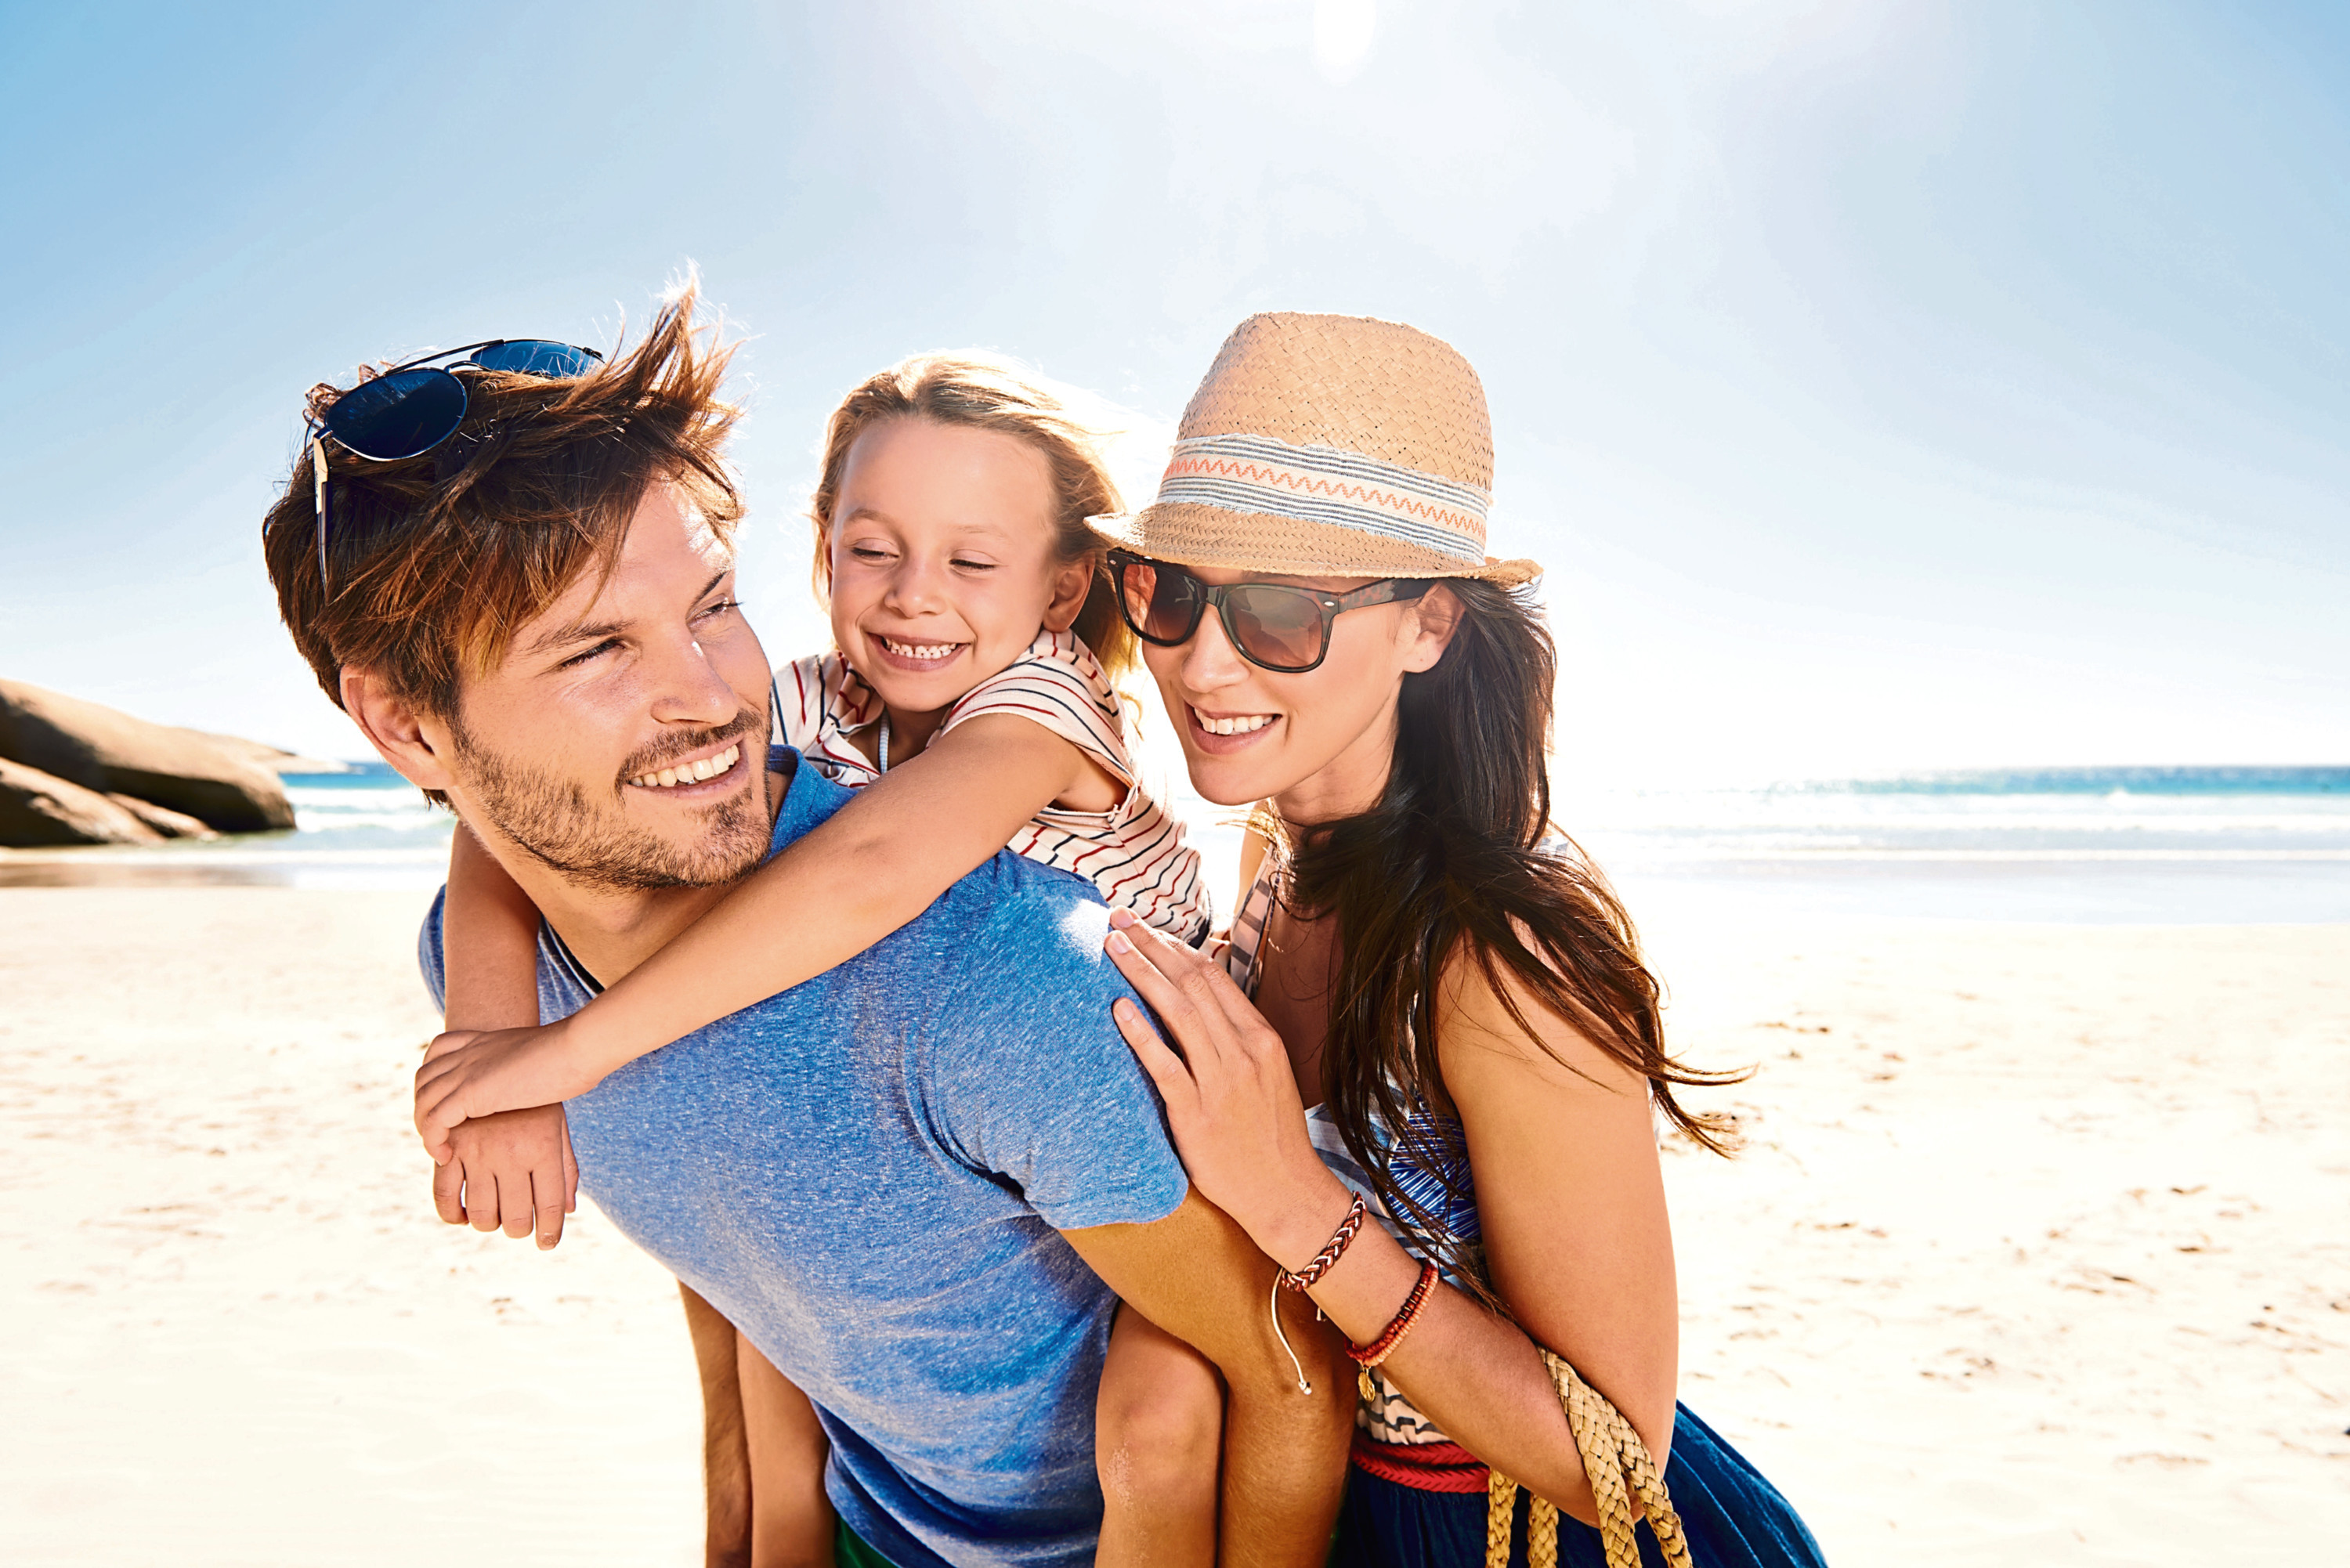 Enjoy a trip this summer without breaking the bank (Getty Images)